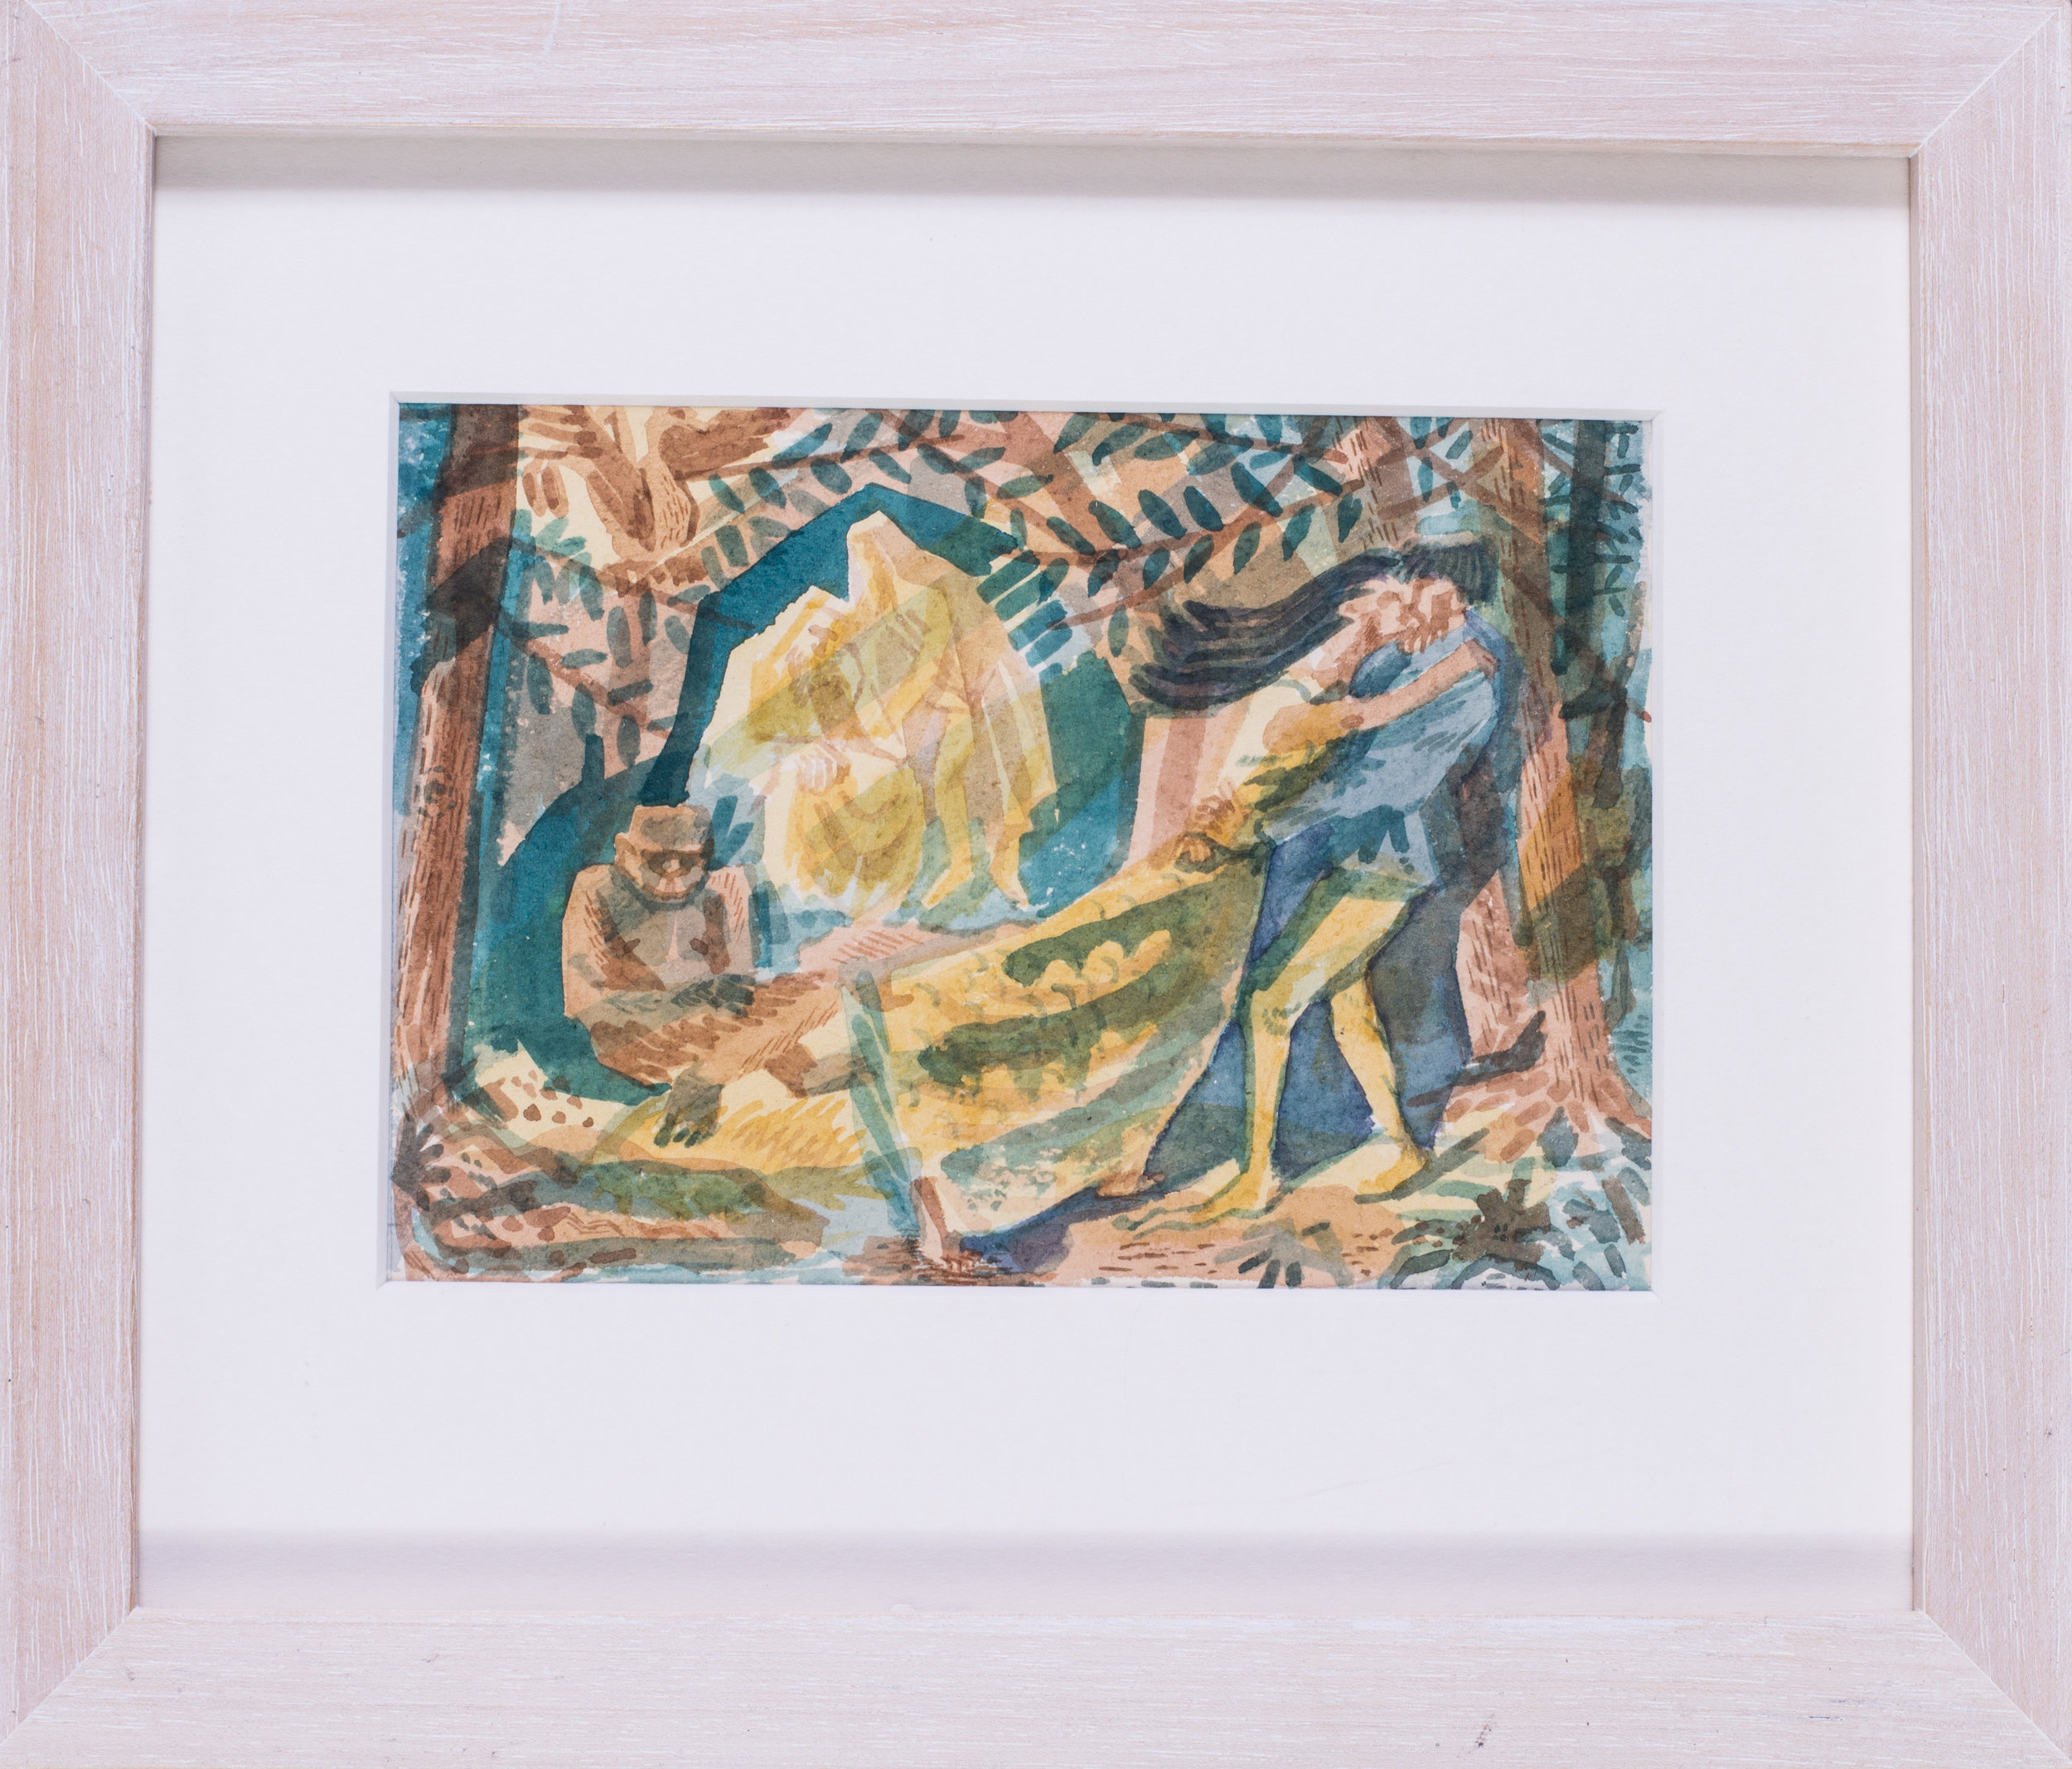 Alan J Tabrun (British, 20th Century)    Ferdinand and Miranda embrace (The Tempest), circa 1950   Watercolour on paper  4.1/2 x 6.1/2 in. (11.5 x 16.5cm.)   Price: £420